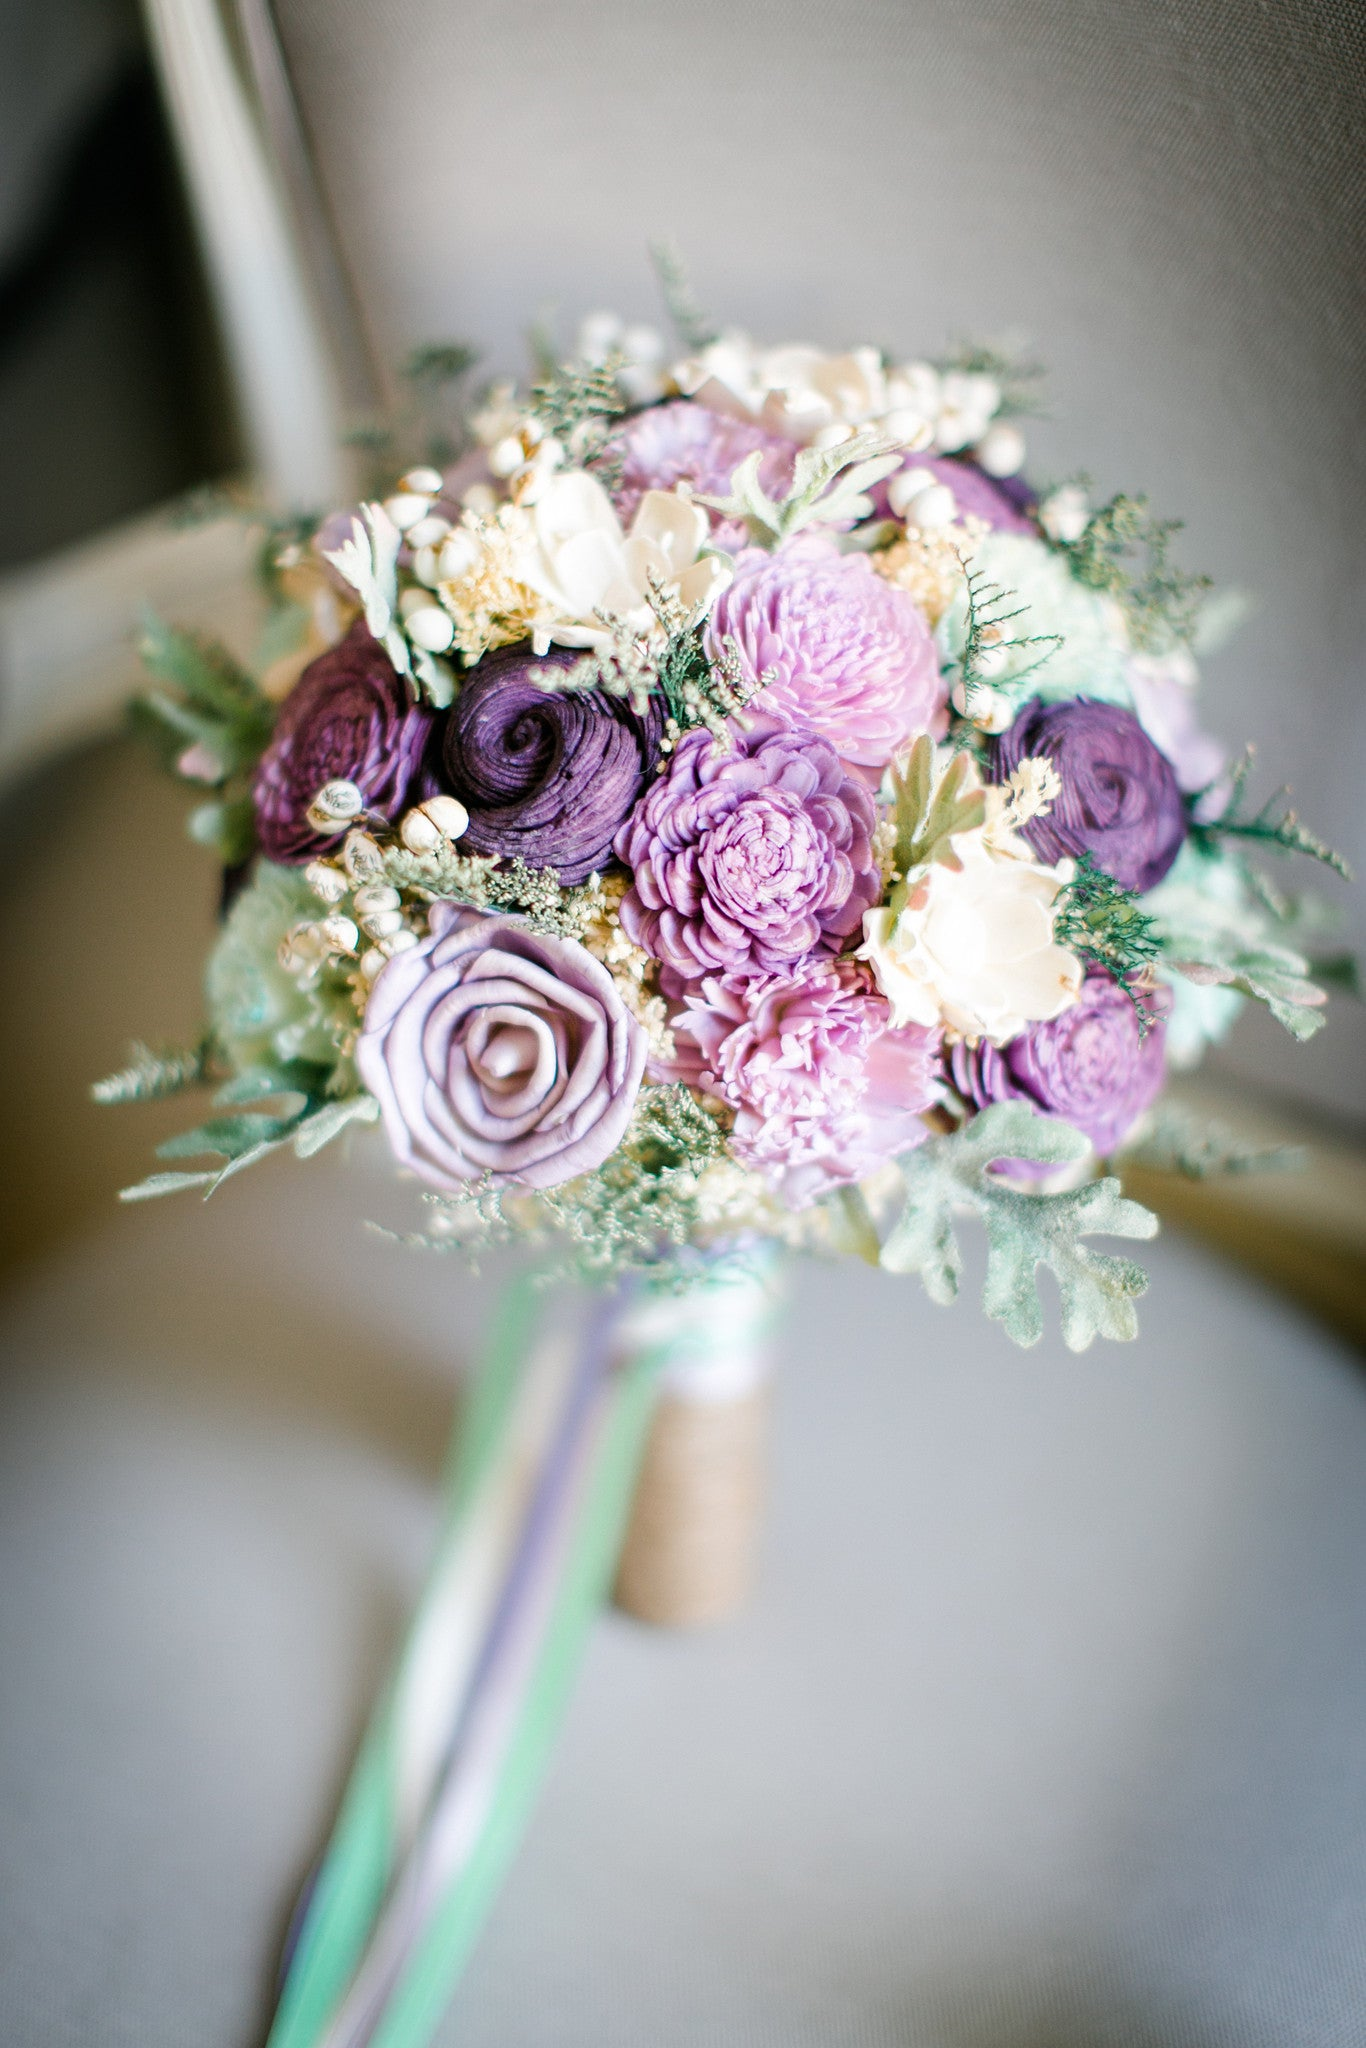 Fantastic Sola Flower Bouquet Image Collection - Wedding and flowers ...